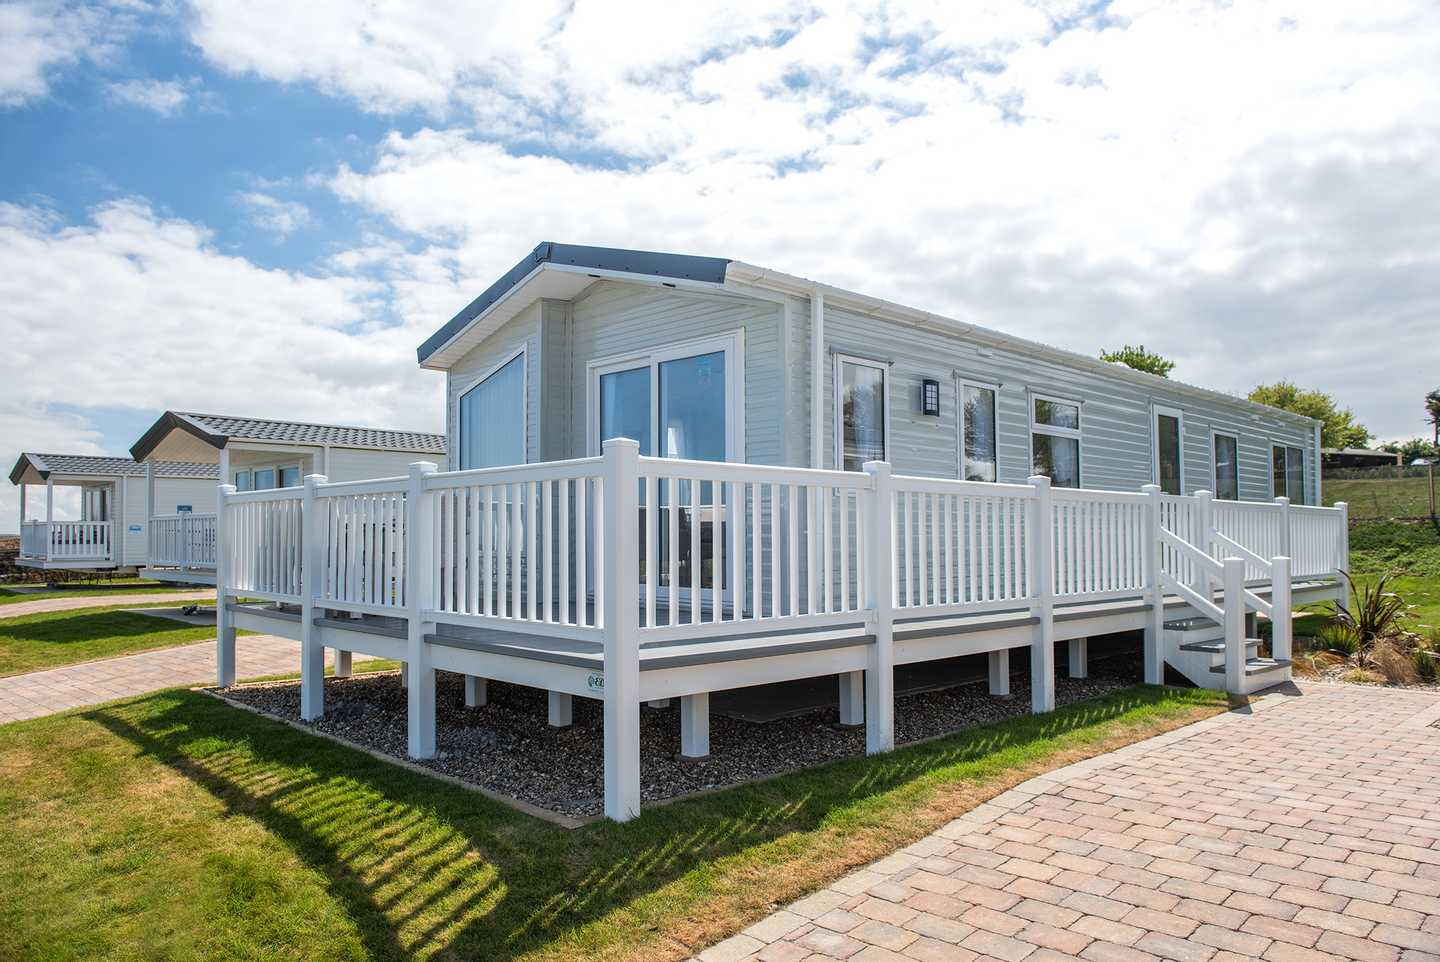 Frontview of Lakeview Platinum with Decking